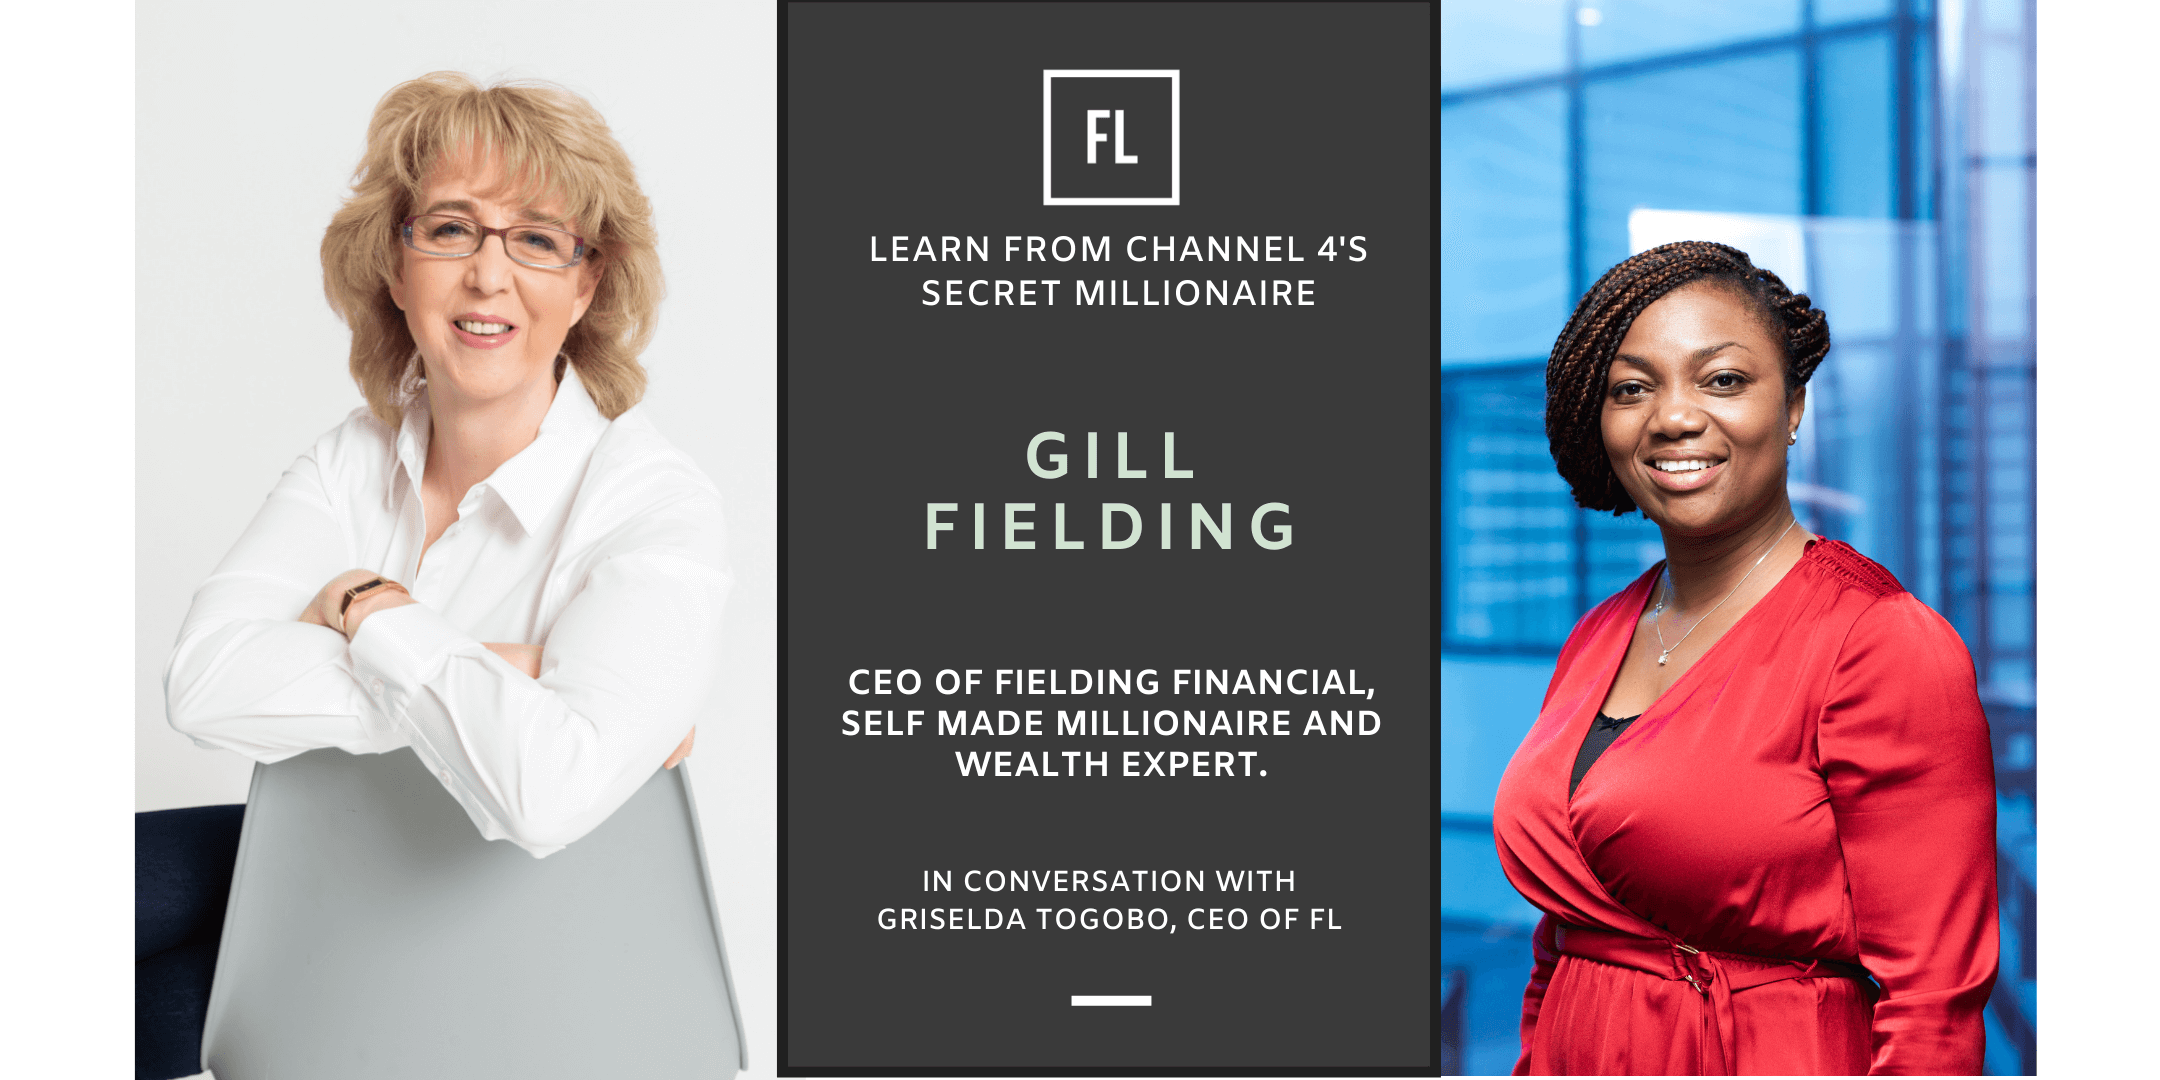 In Conversation with Gill Fielding, Self-Made Millionaire & Wealth Expert